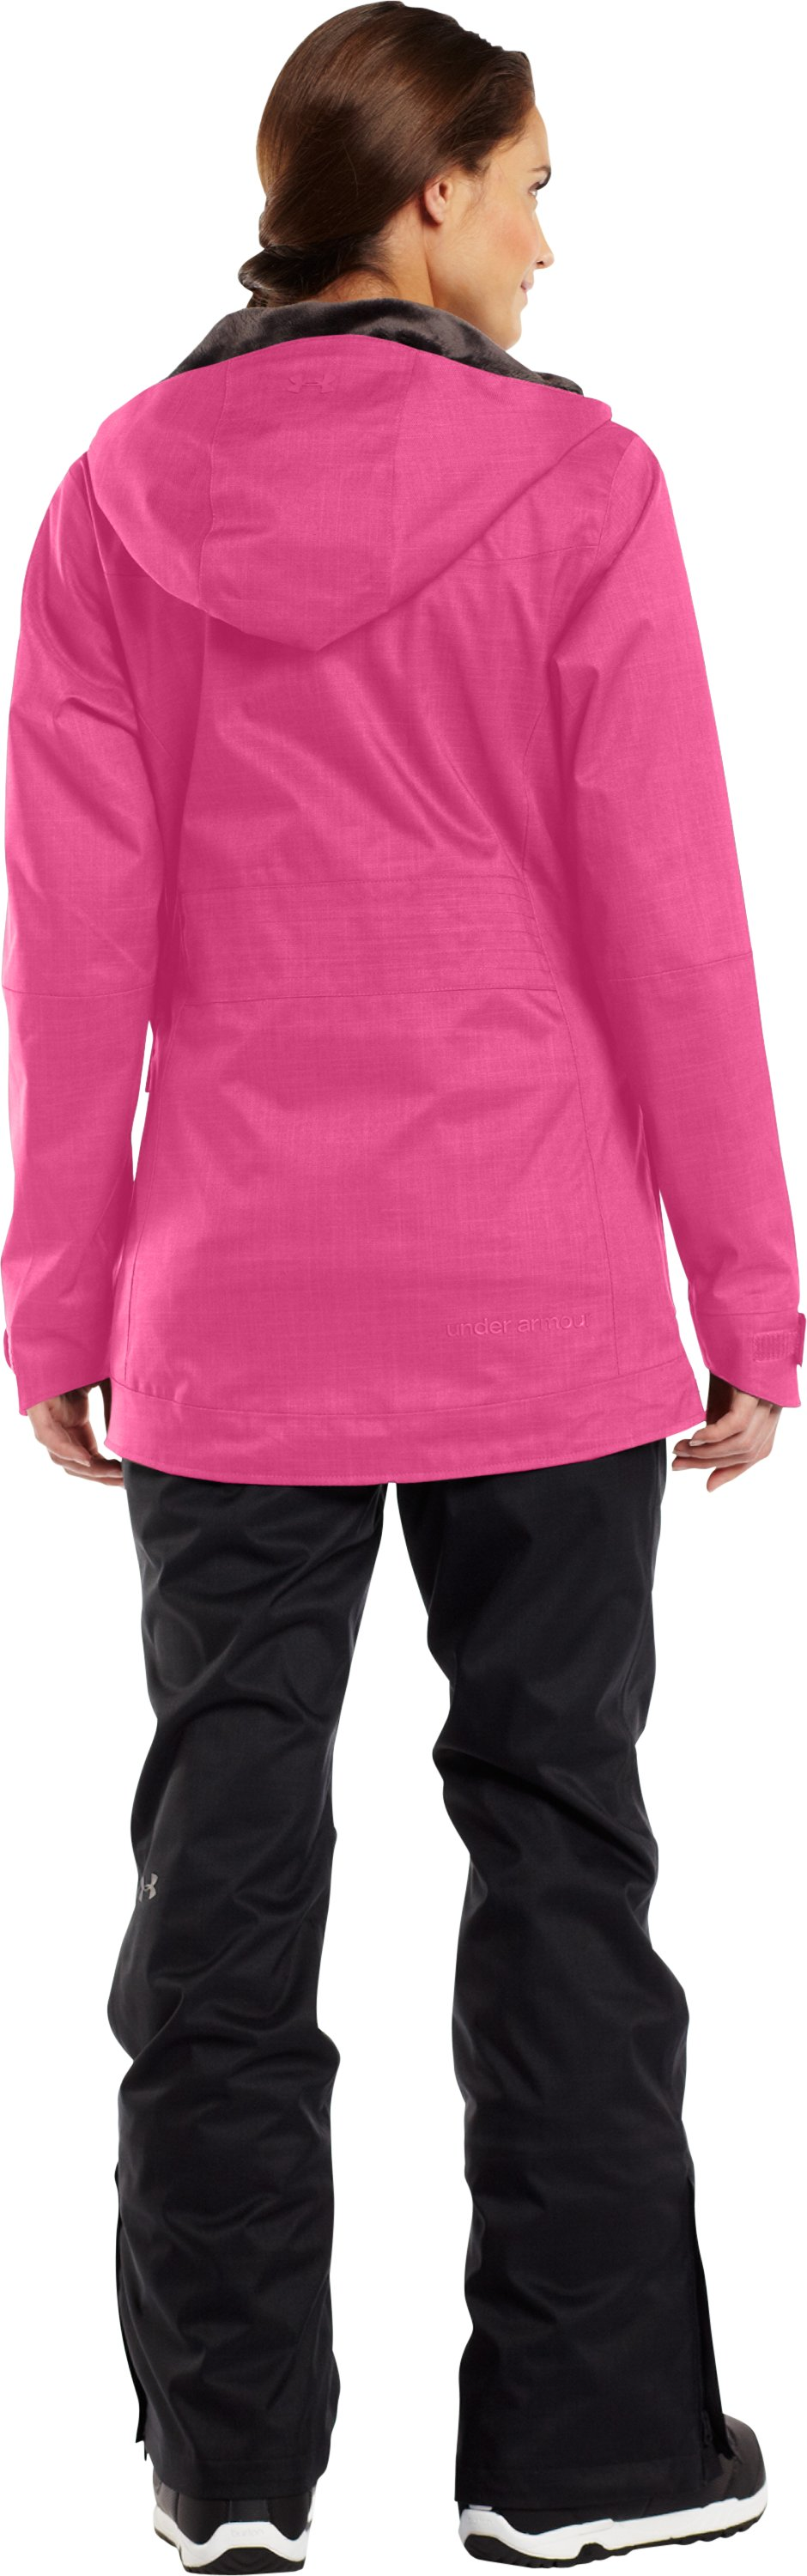 Women's ColdGear® Infrared Wendy Shell, Lollipop, Back